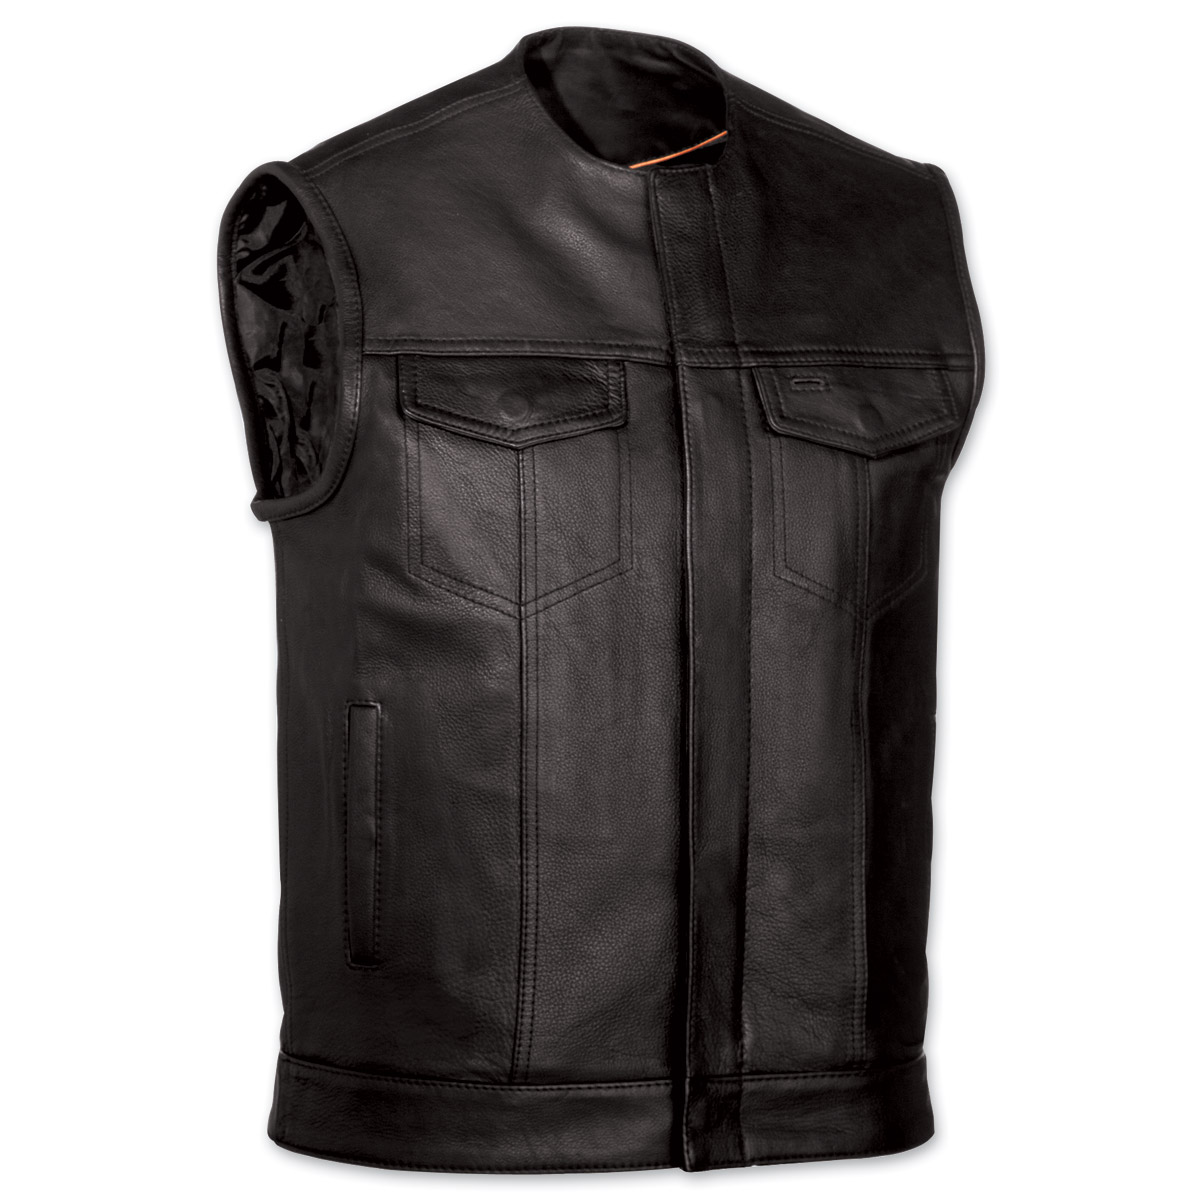 Leather jackets and vests